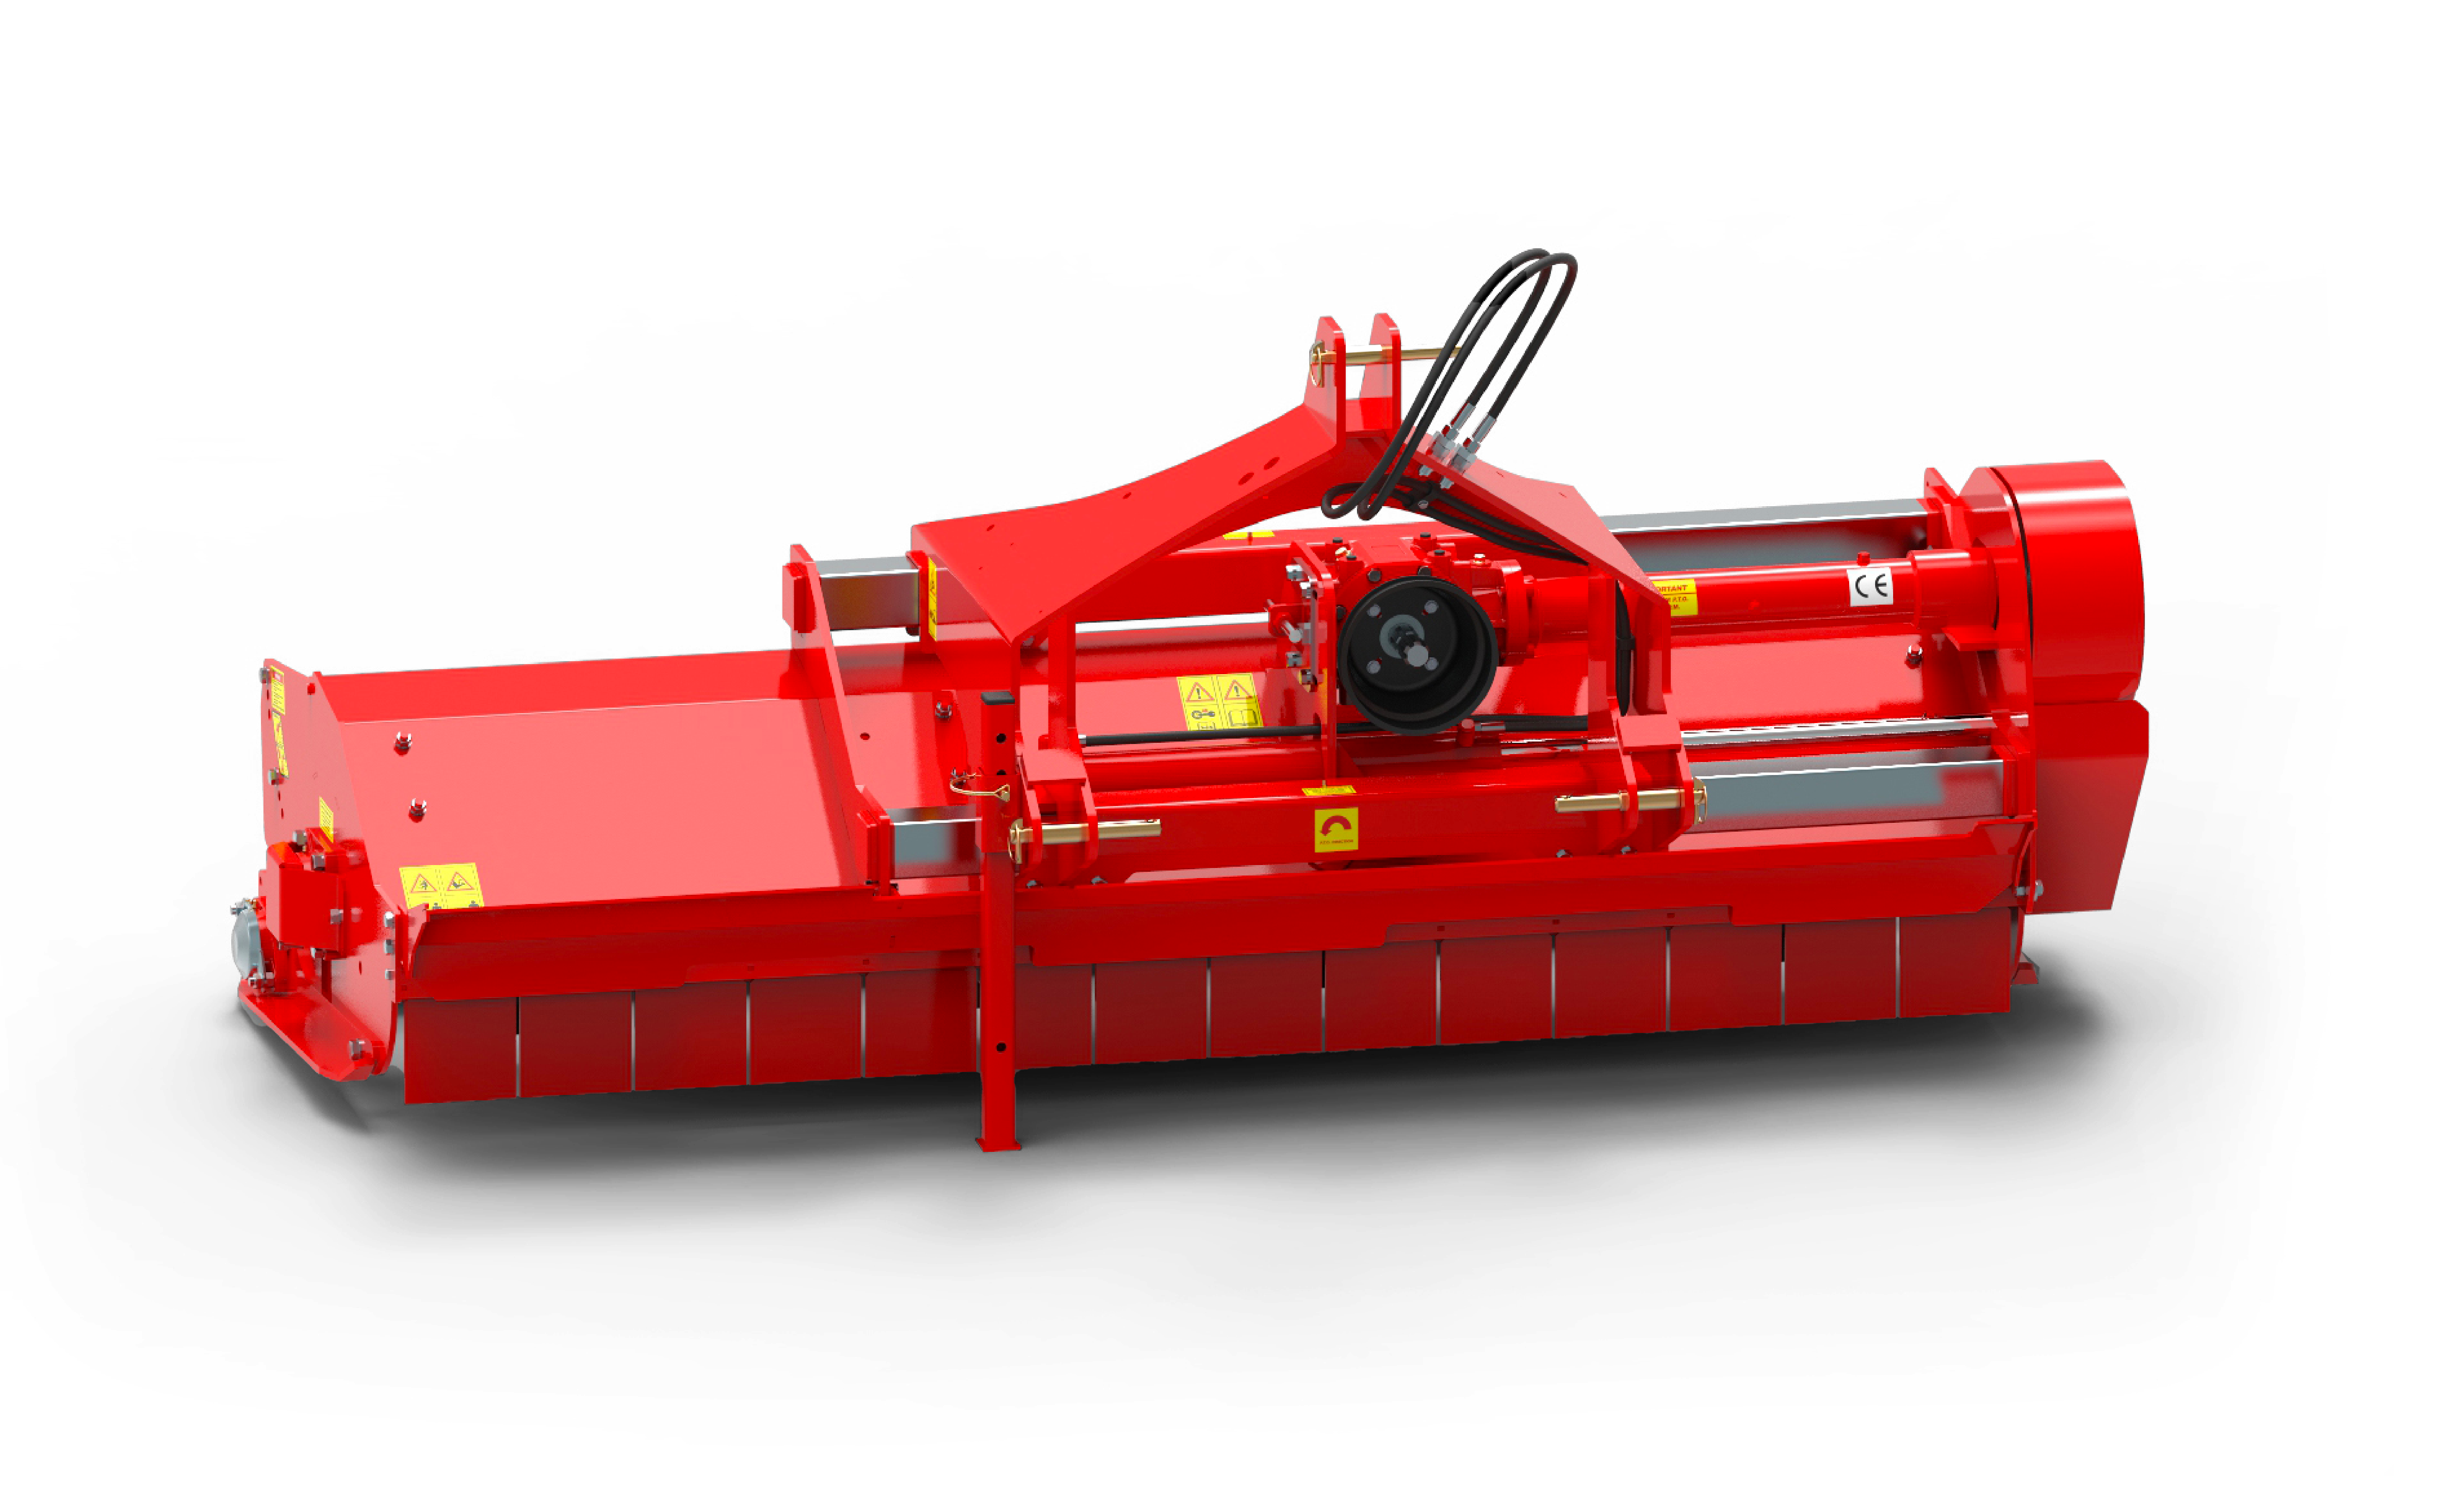 Warlord S3 mower rear red